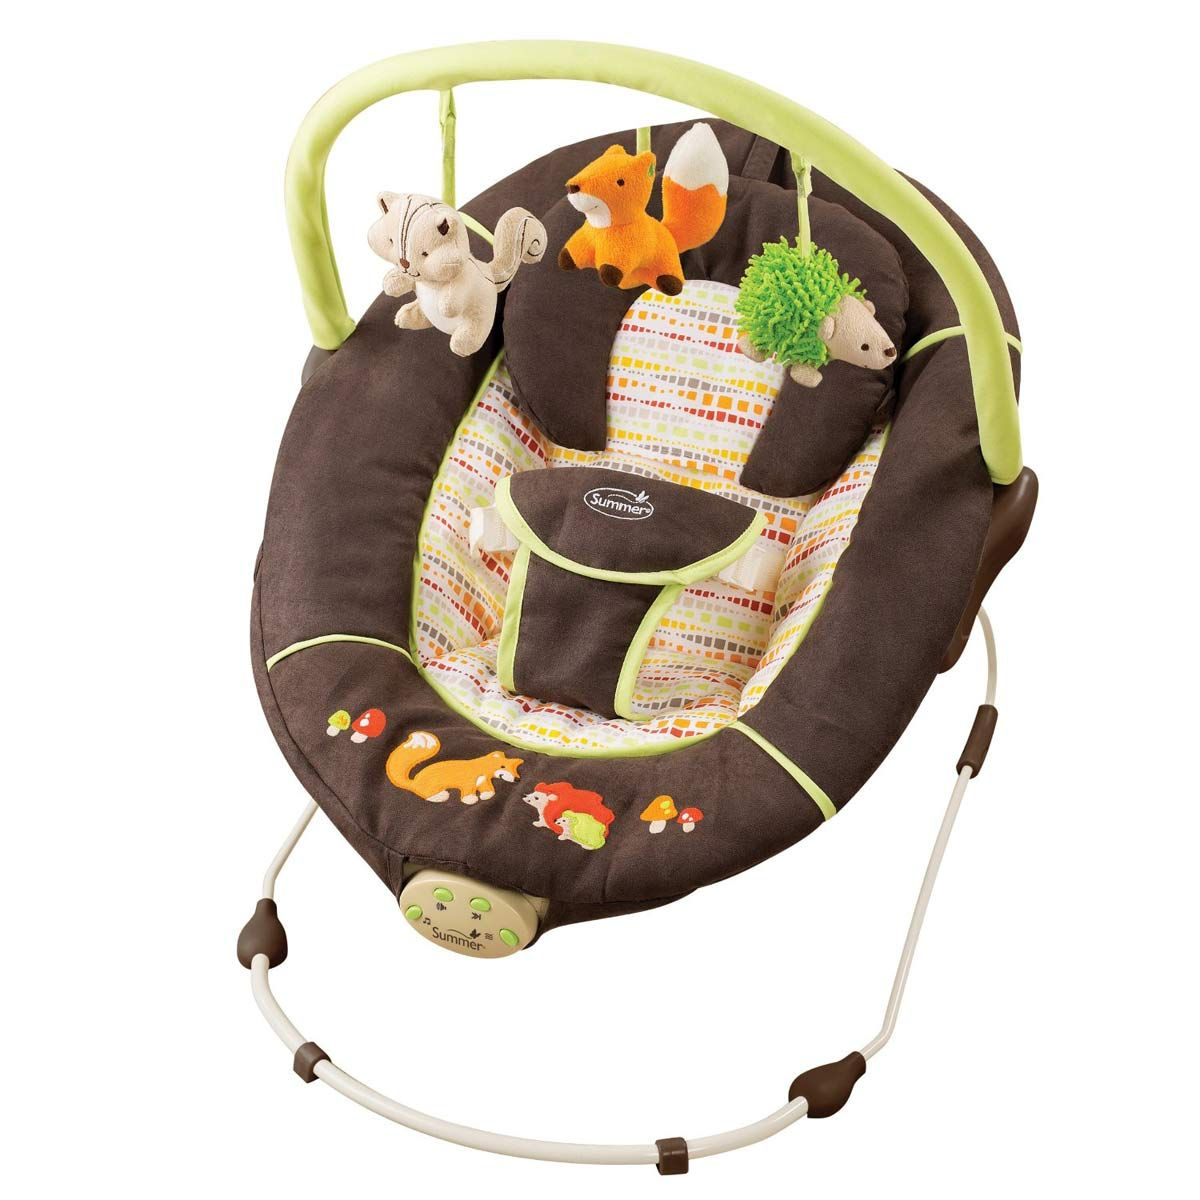 Pour Les Jumeaux Chaise Vibrante Baby Bouncer Baby Swings Summer Baby